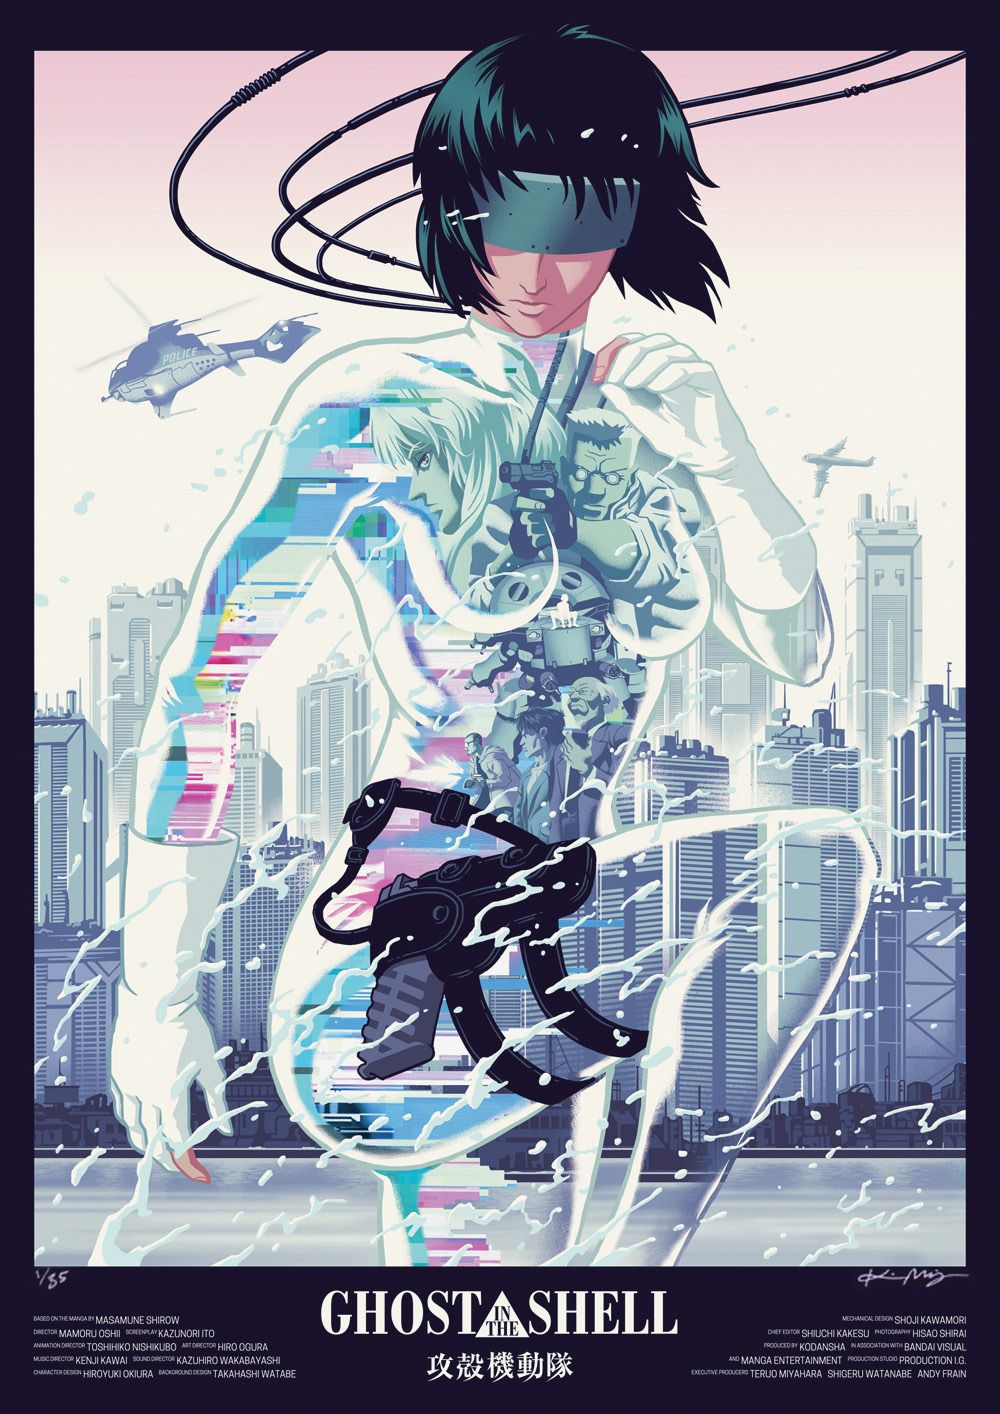 Supersonic Art Kristin Miklos X Ghost In The Shell Artist Ghost In The Shell Anime Cyberpunk Art